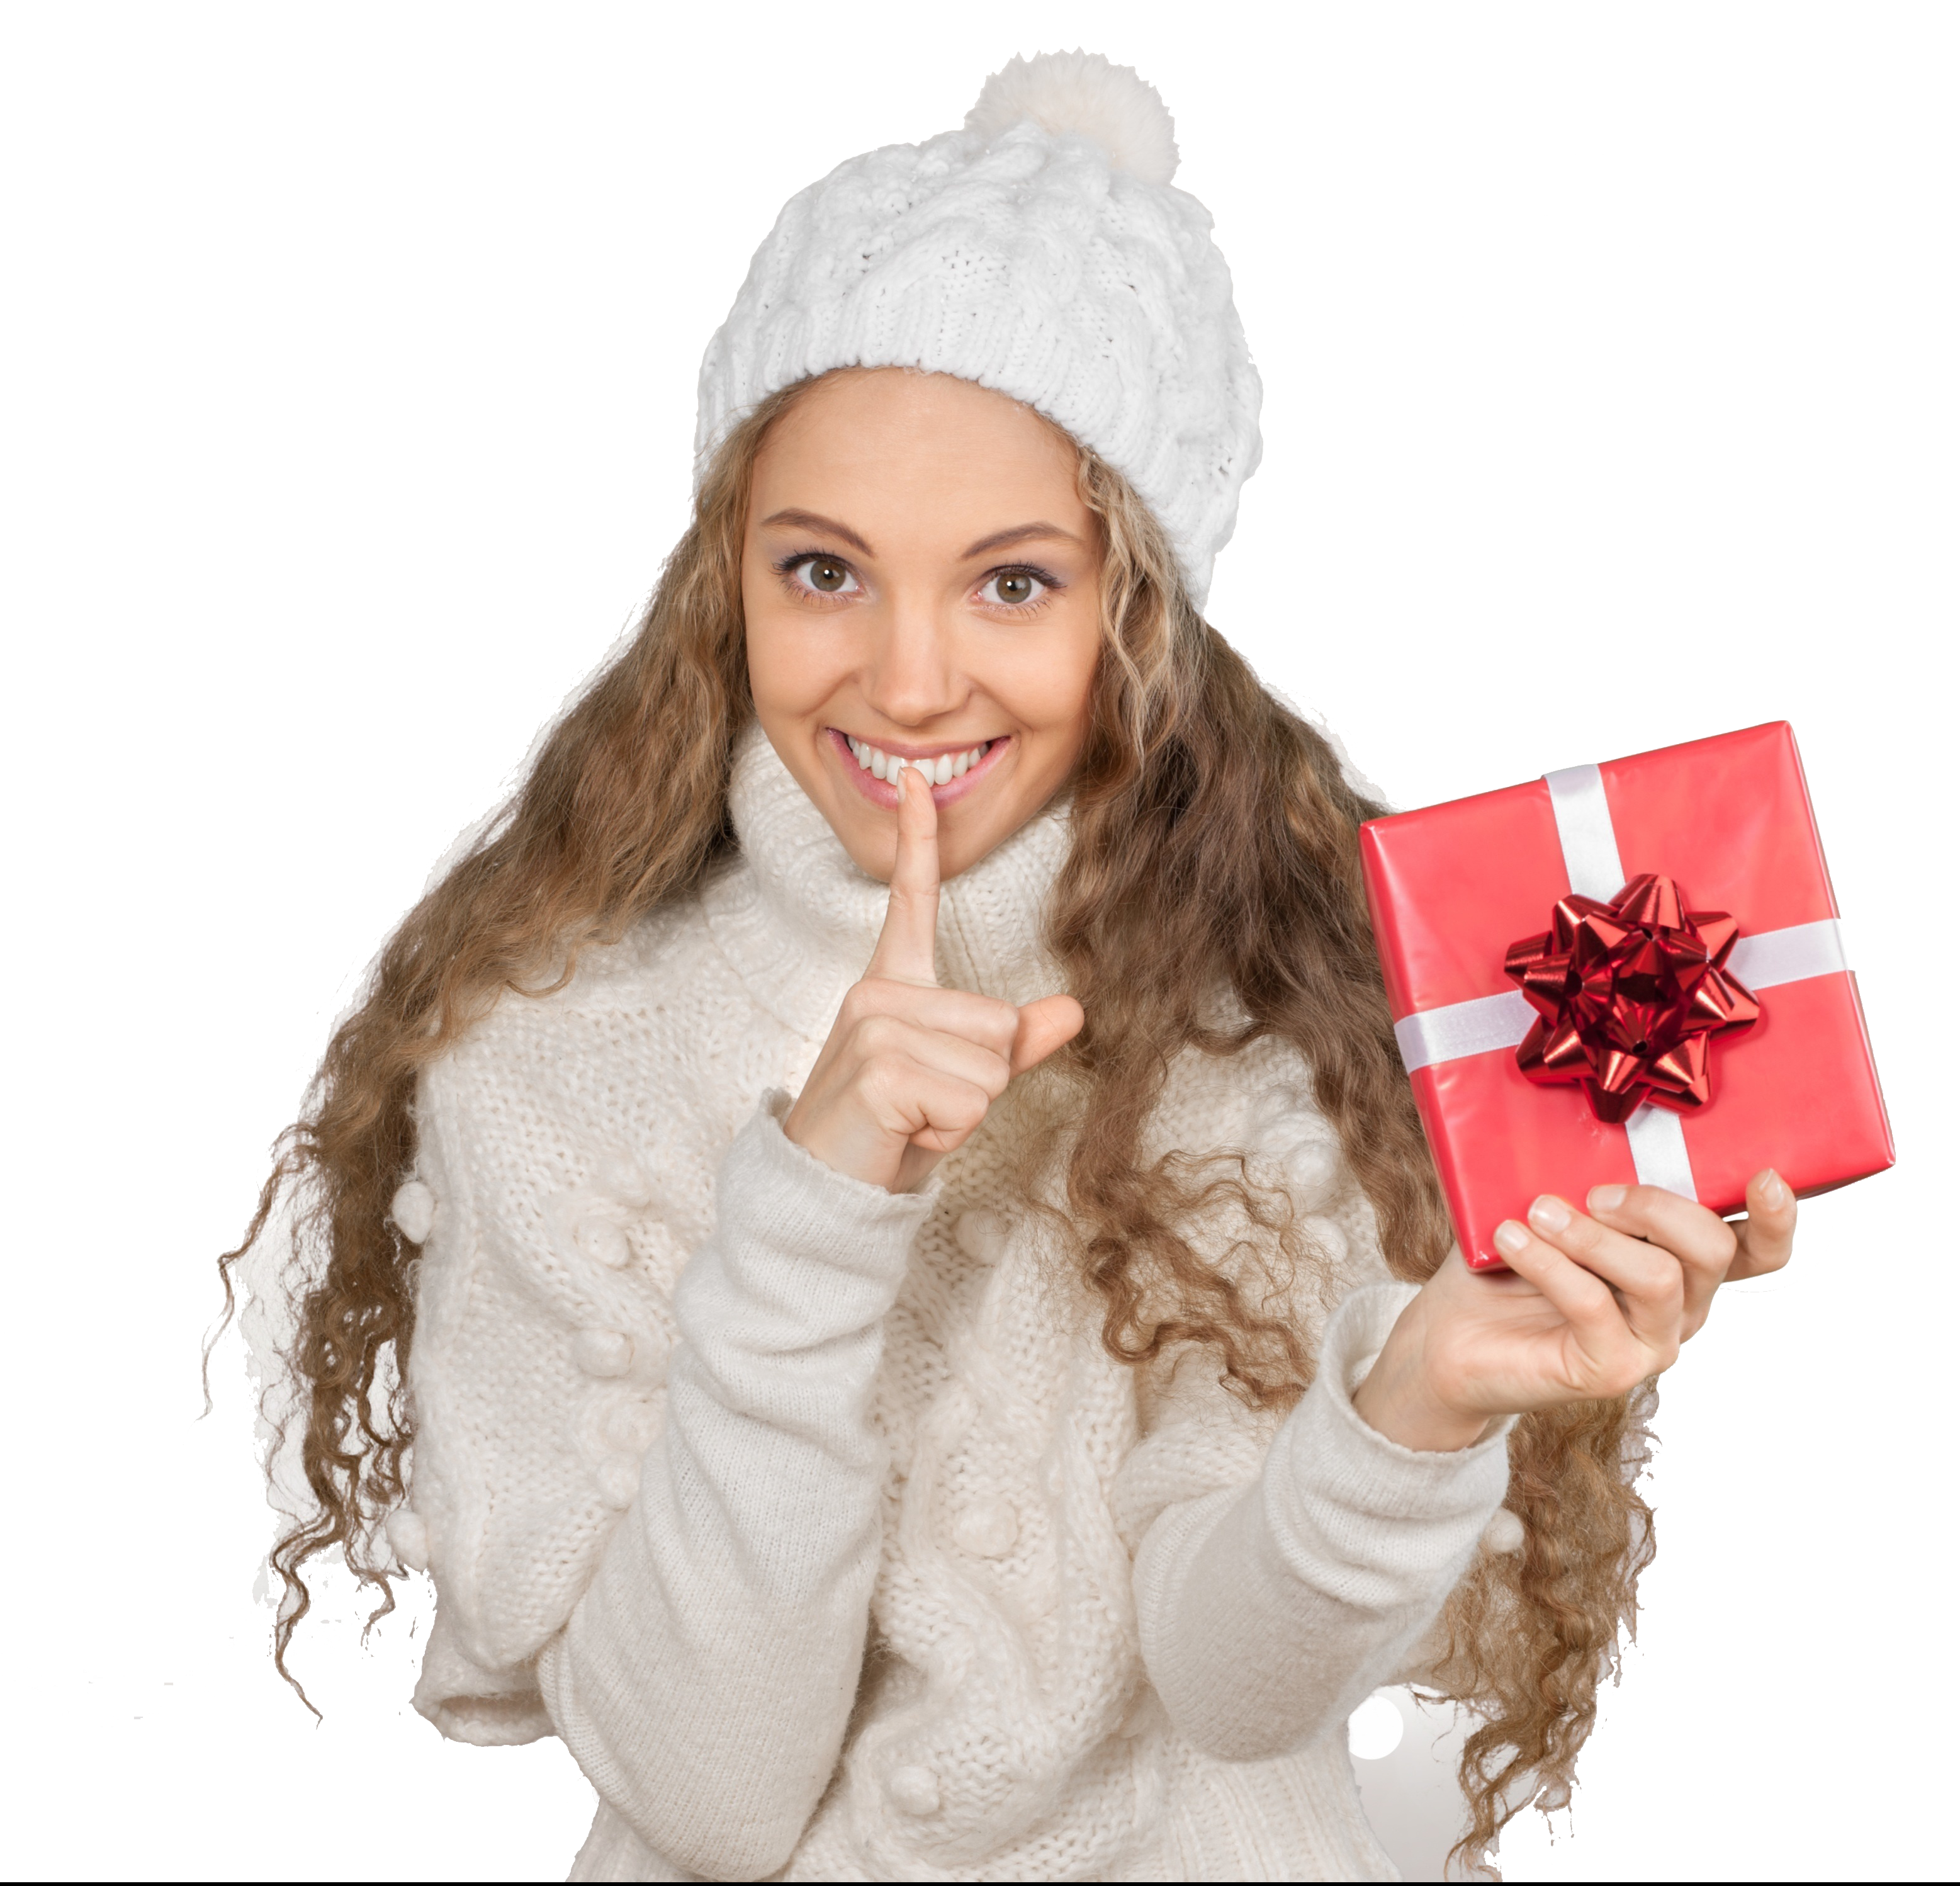 Image of teen holding gift